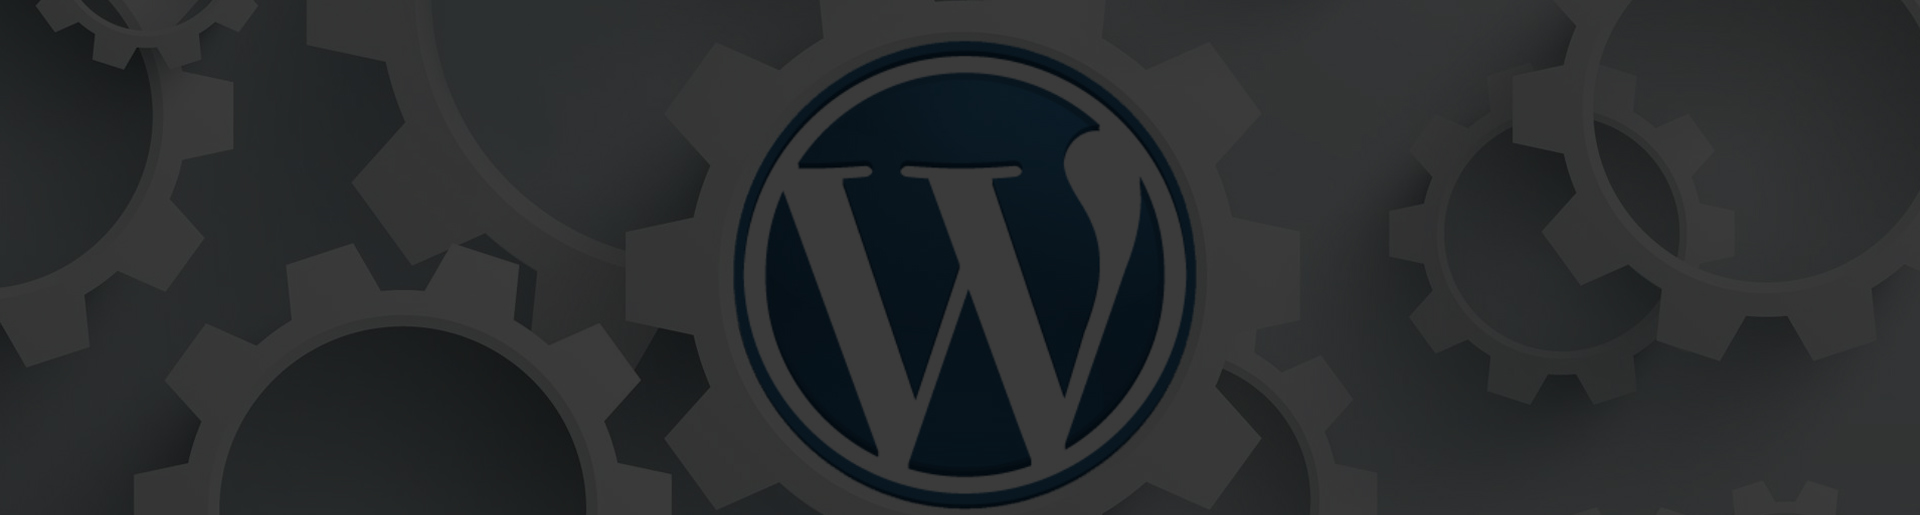 WordPress Development Company India